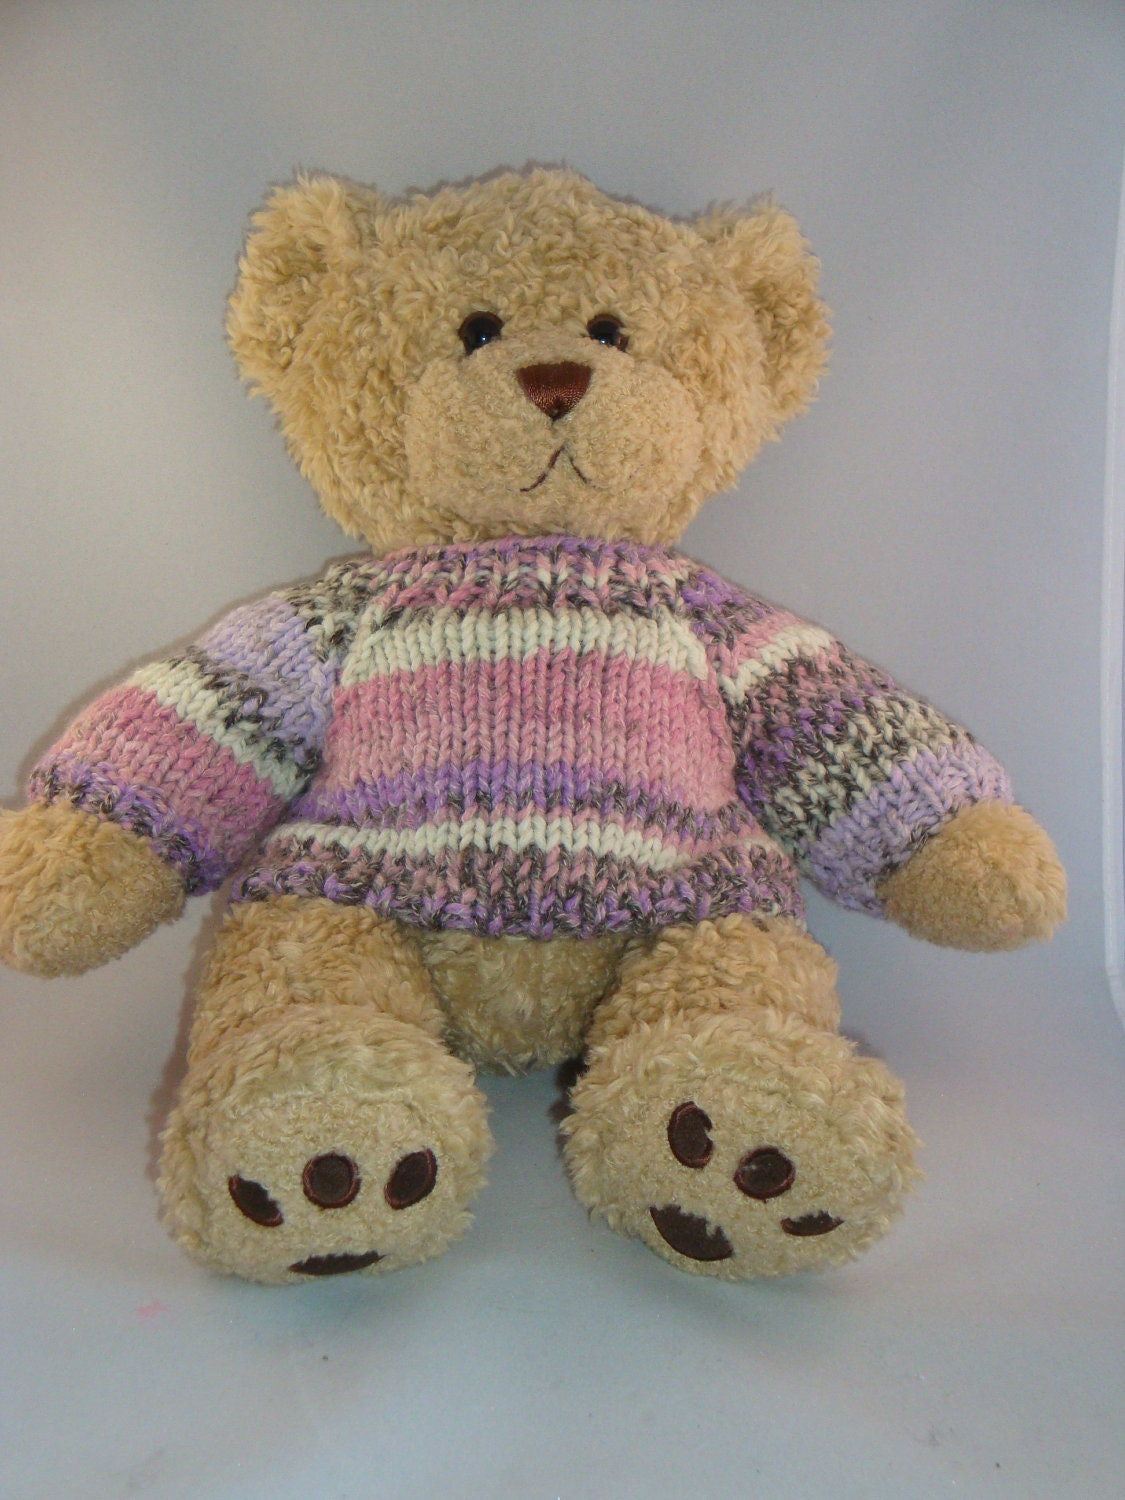 Knitting Pattern For Teddy Bear Sweater : Chunky Teddy Bear Sweater Hand knitted Fair Isle by ...